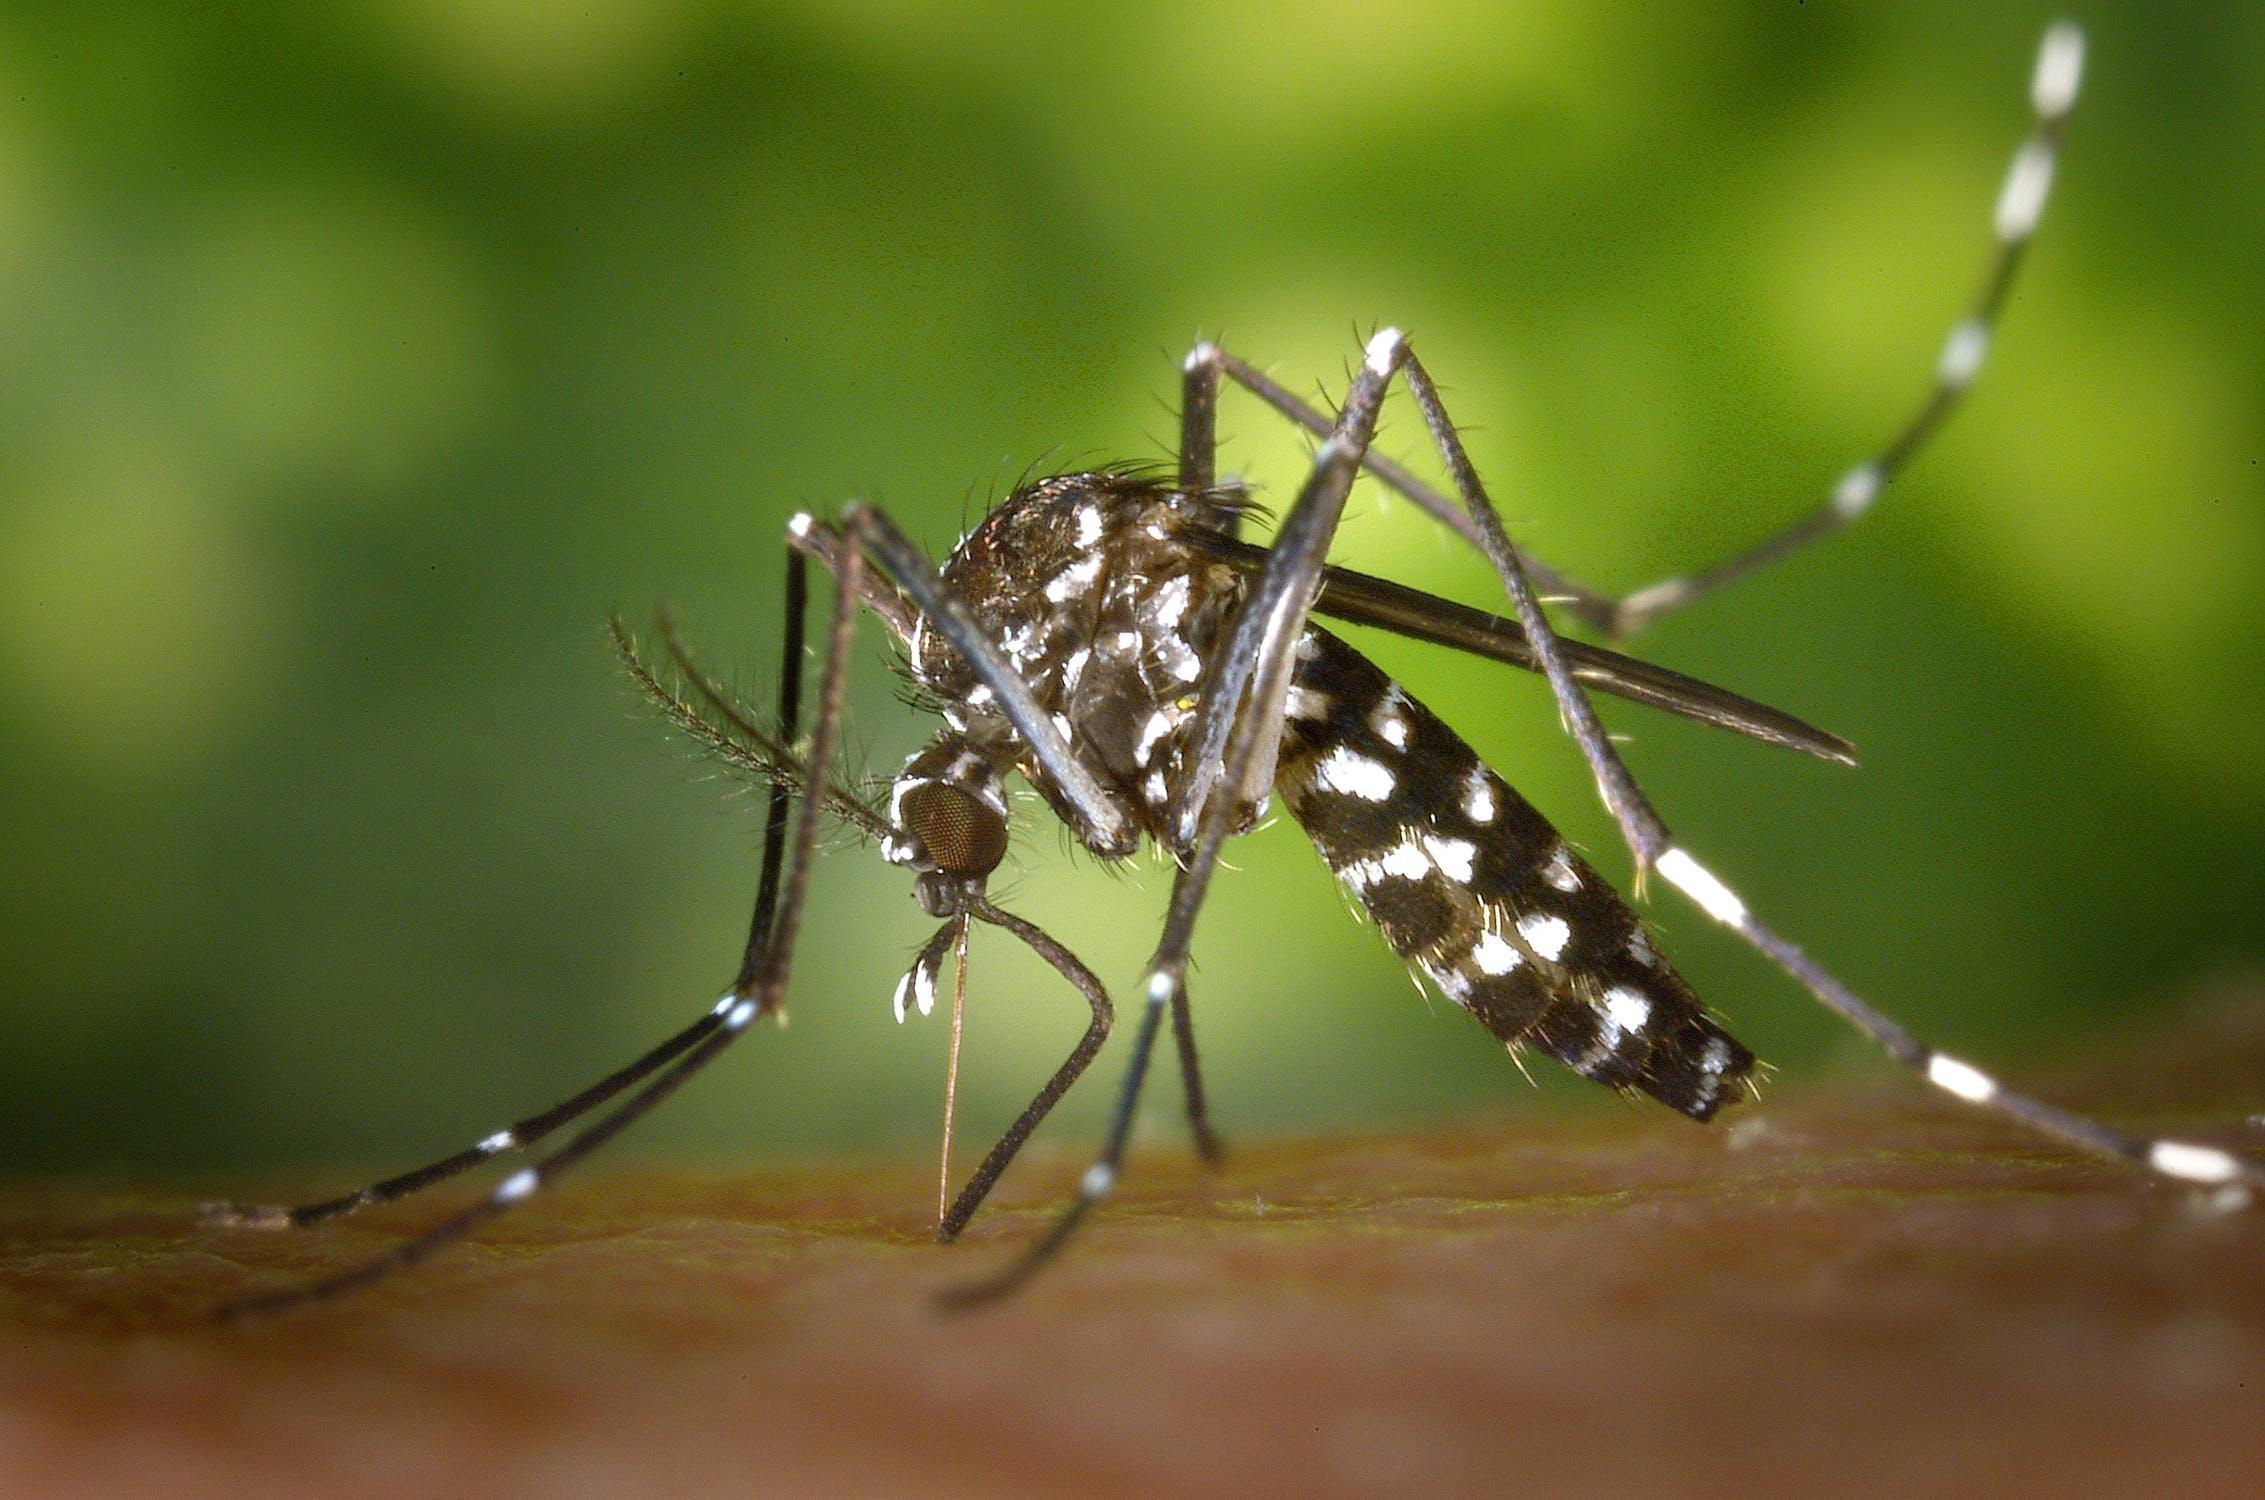 Mosquitos can transfer West Nile Virus to humans. Pexels